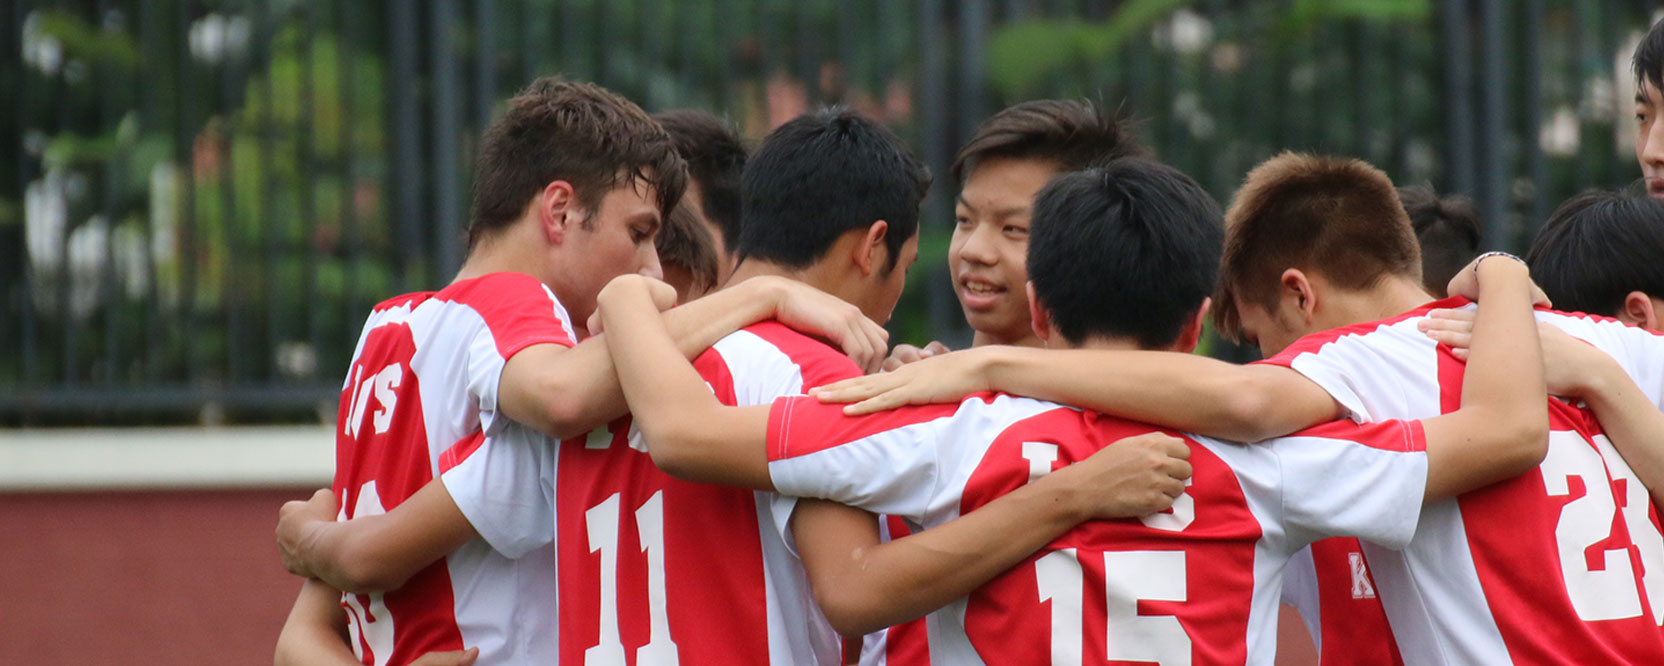 ICS Singapore varsity soccer team in a pre-game huddle